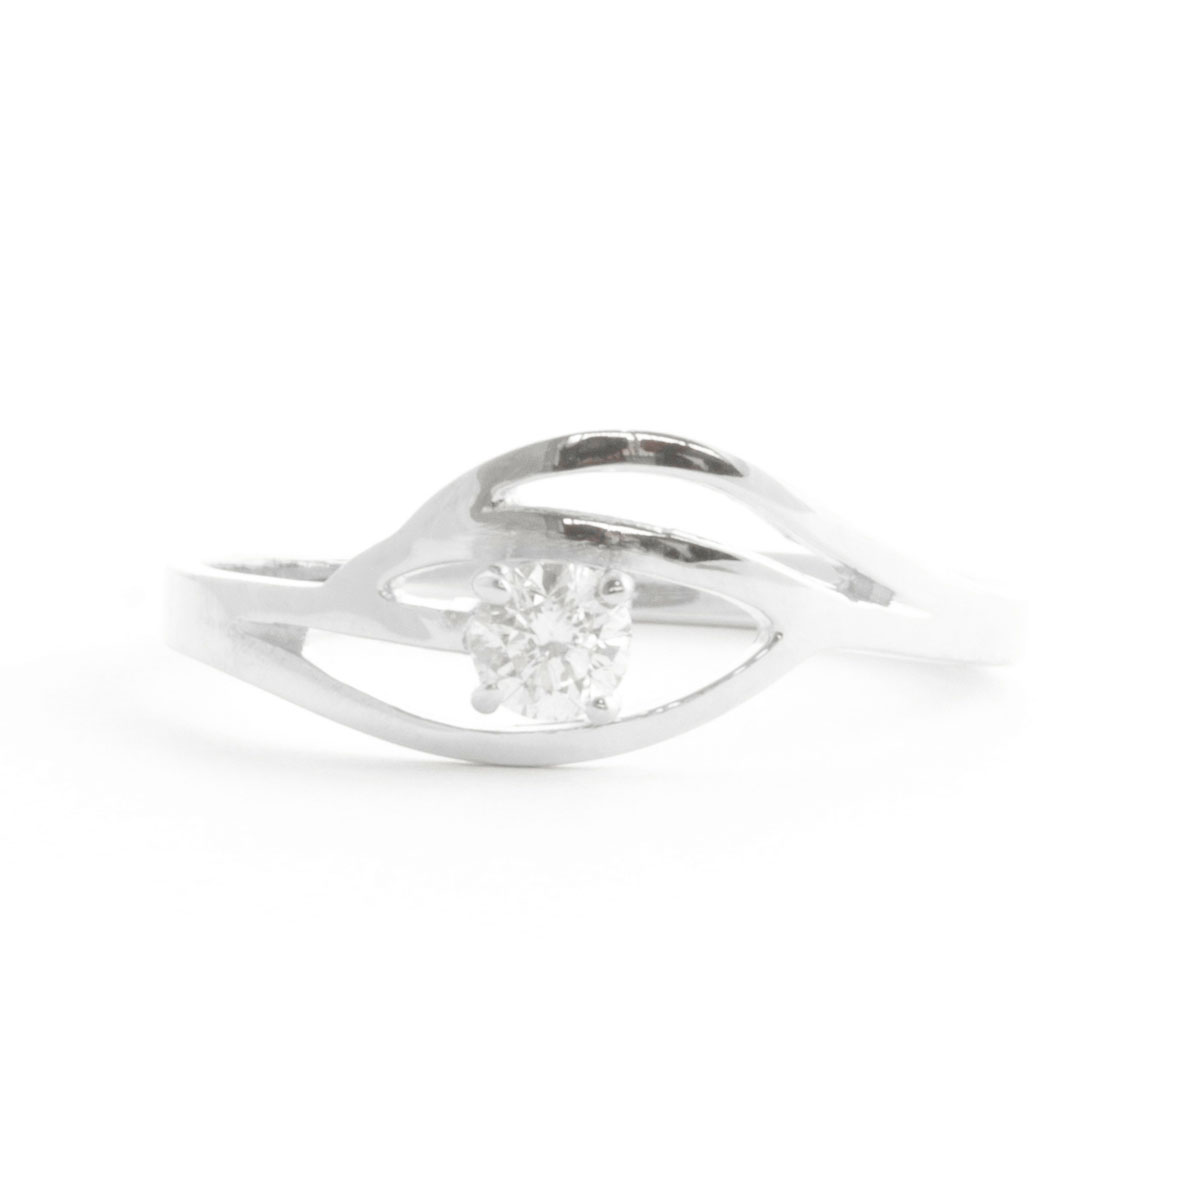 Round Cut Diamond Ring 0.15 ct in Sterling Silver